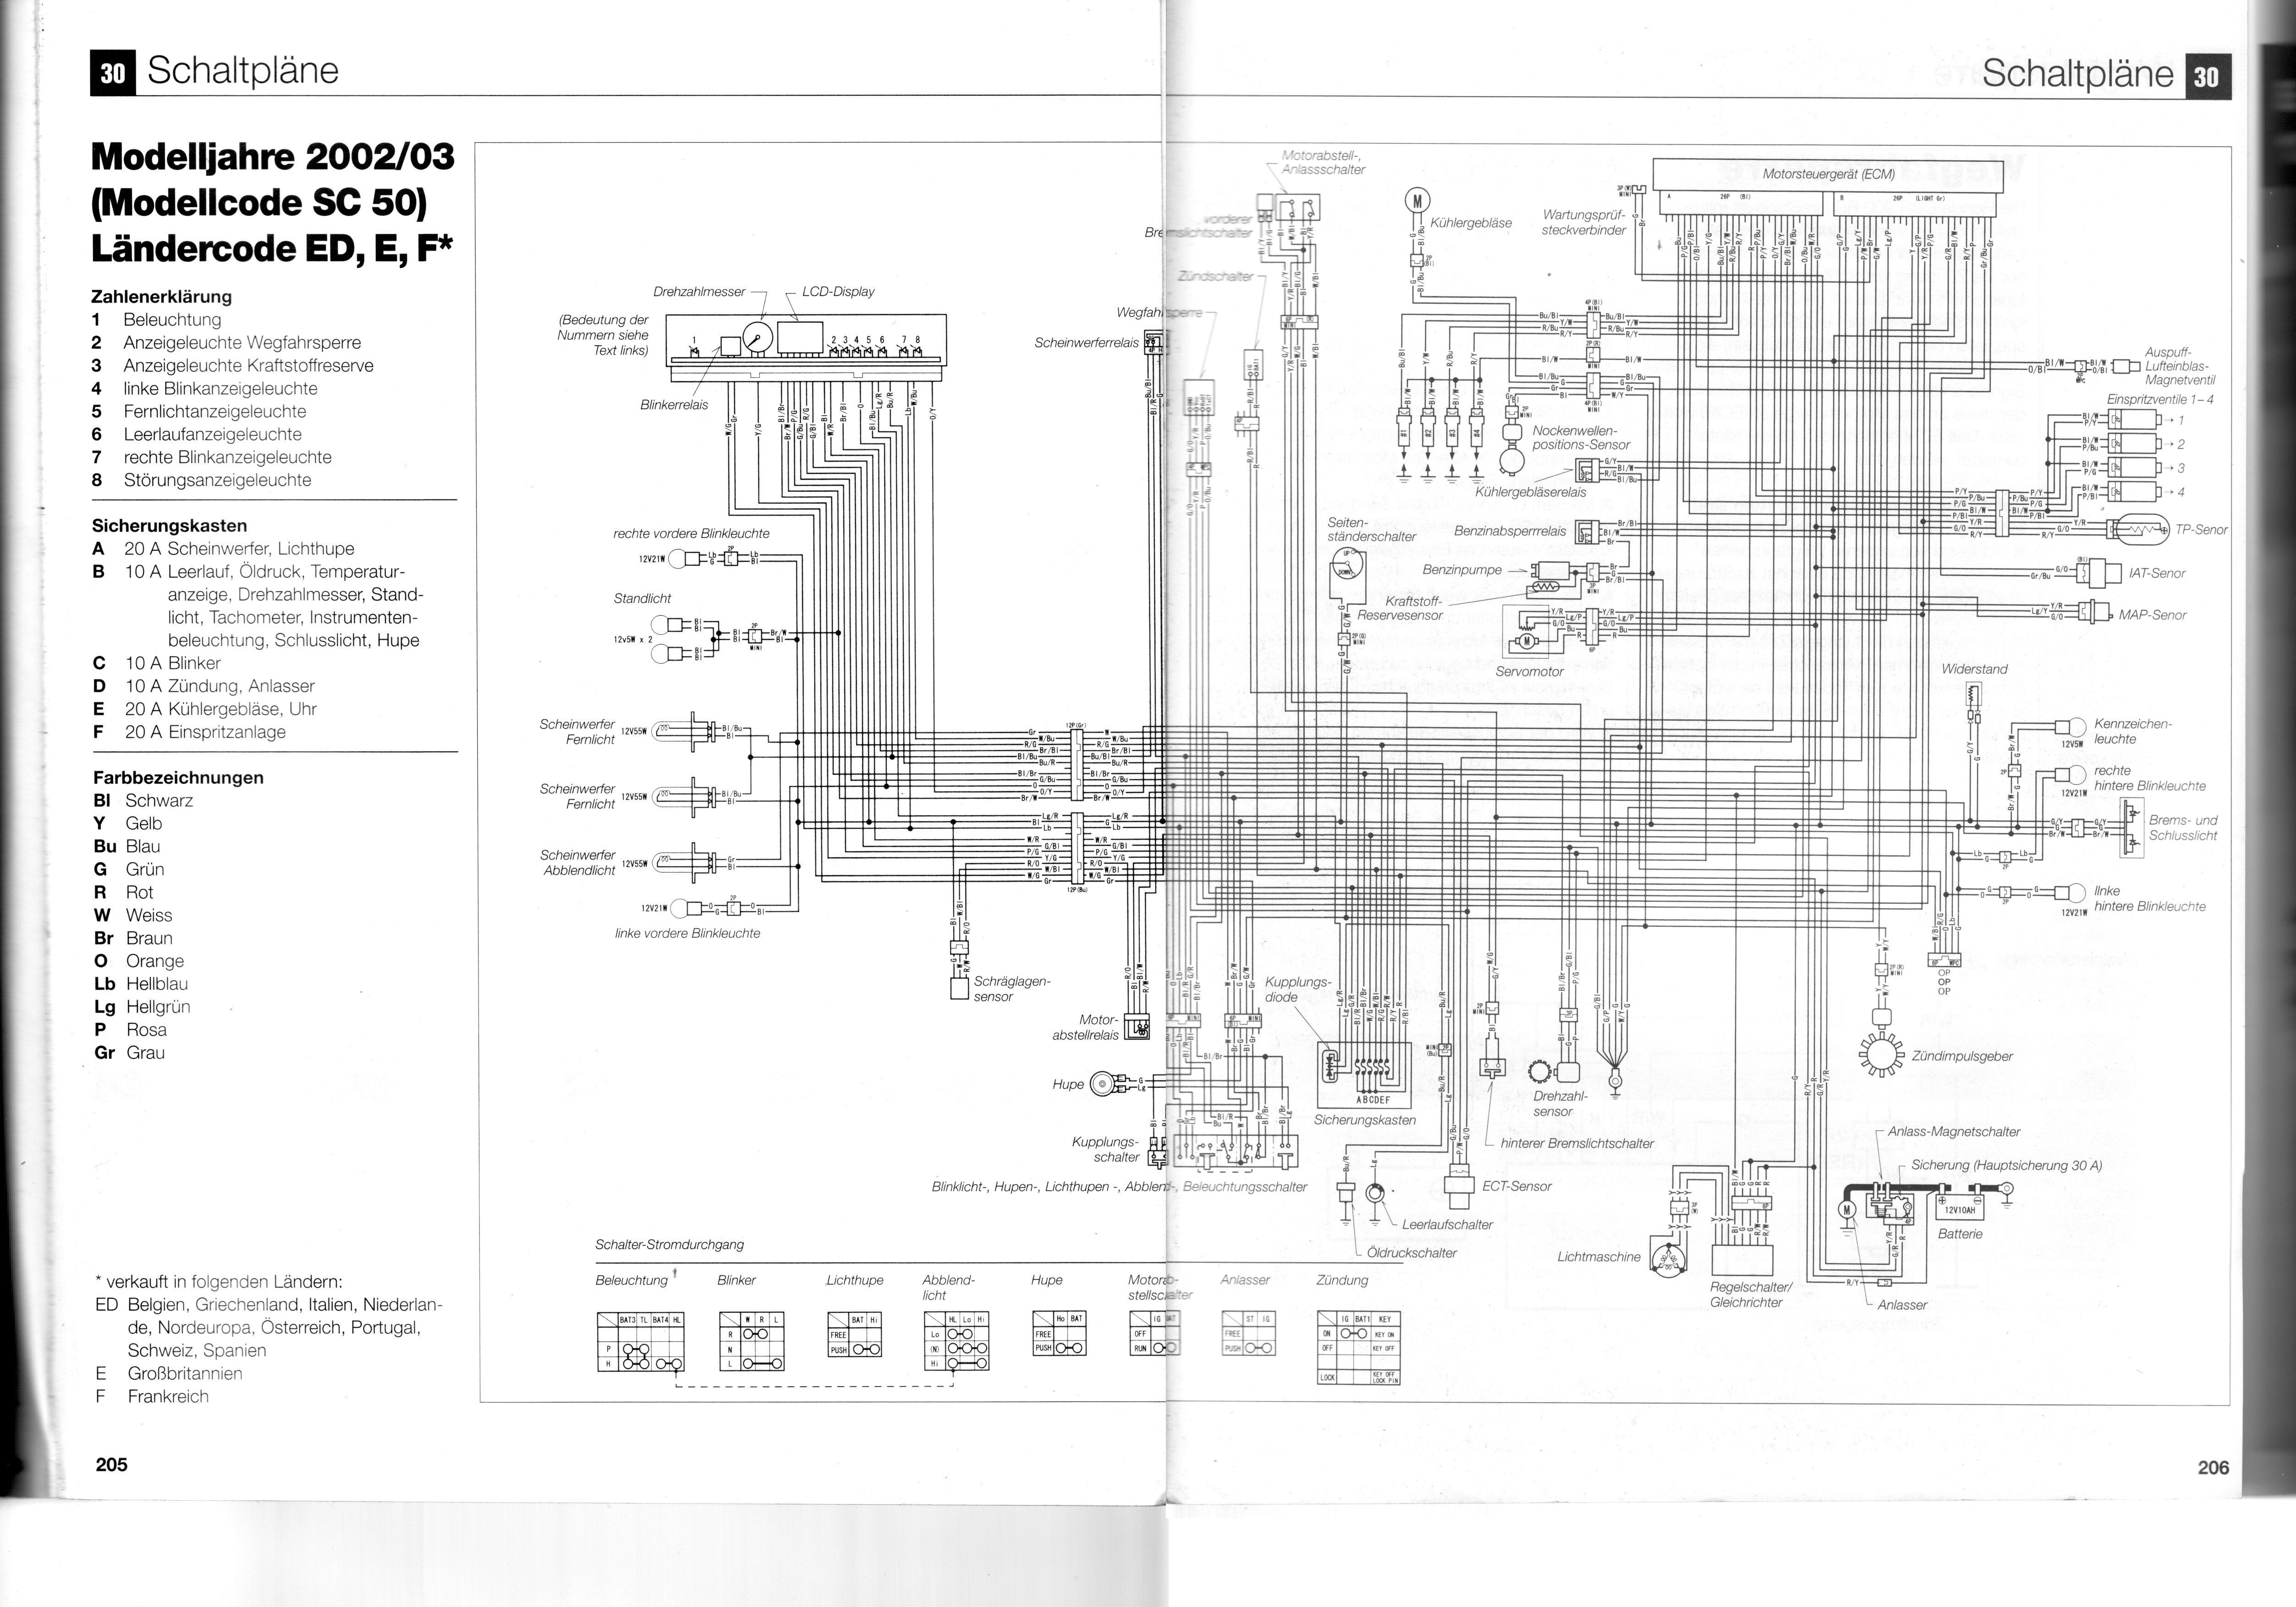 cbr 1000 wiring diagram cbr r1 wiring diagram